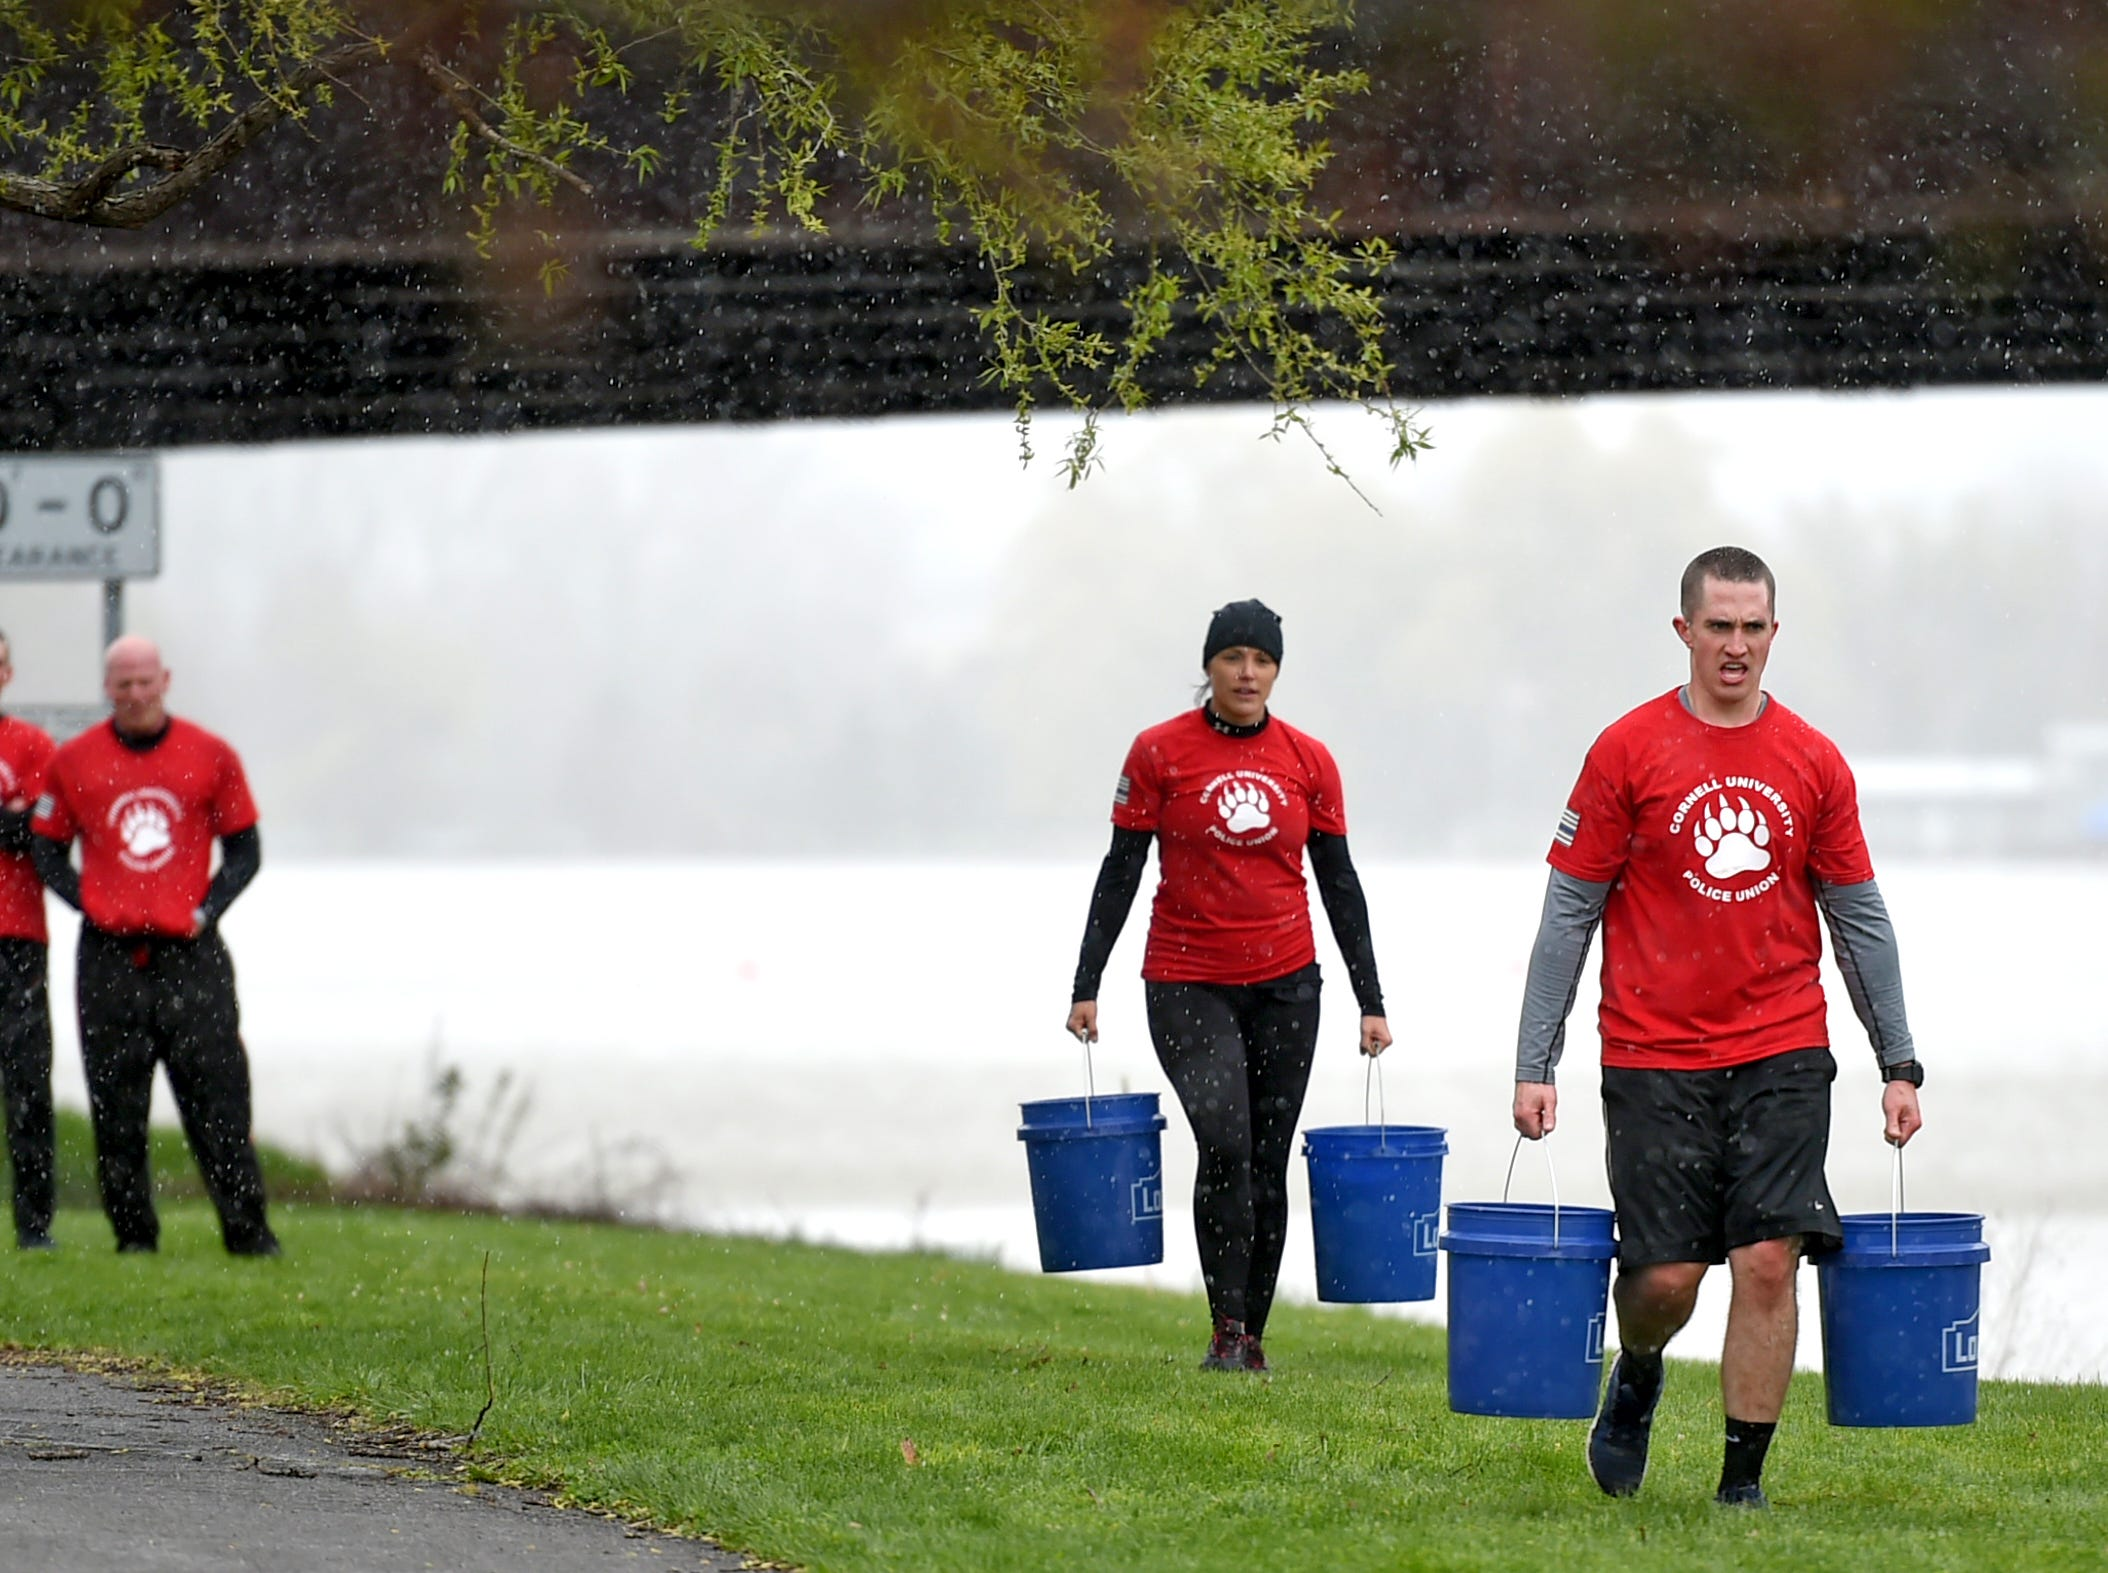 Members of the Cornell University law enforcement community were among the first responders participating in Saturday's Mud, Sweat and Cheers Extreme Fitness Challenge in Ithaca. The race honors Marine Cpl. Christopher Bordoni, an Ithaca native who died in 2012 after being wounded while conducting combat operations in Afghanistan.